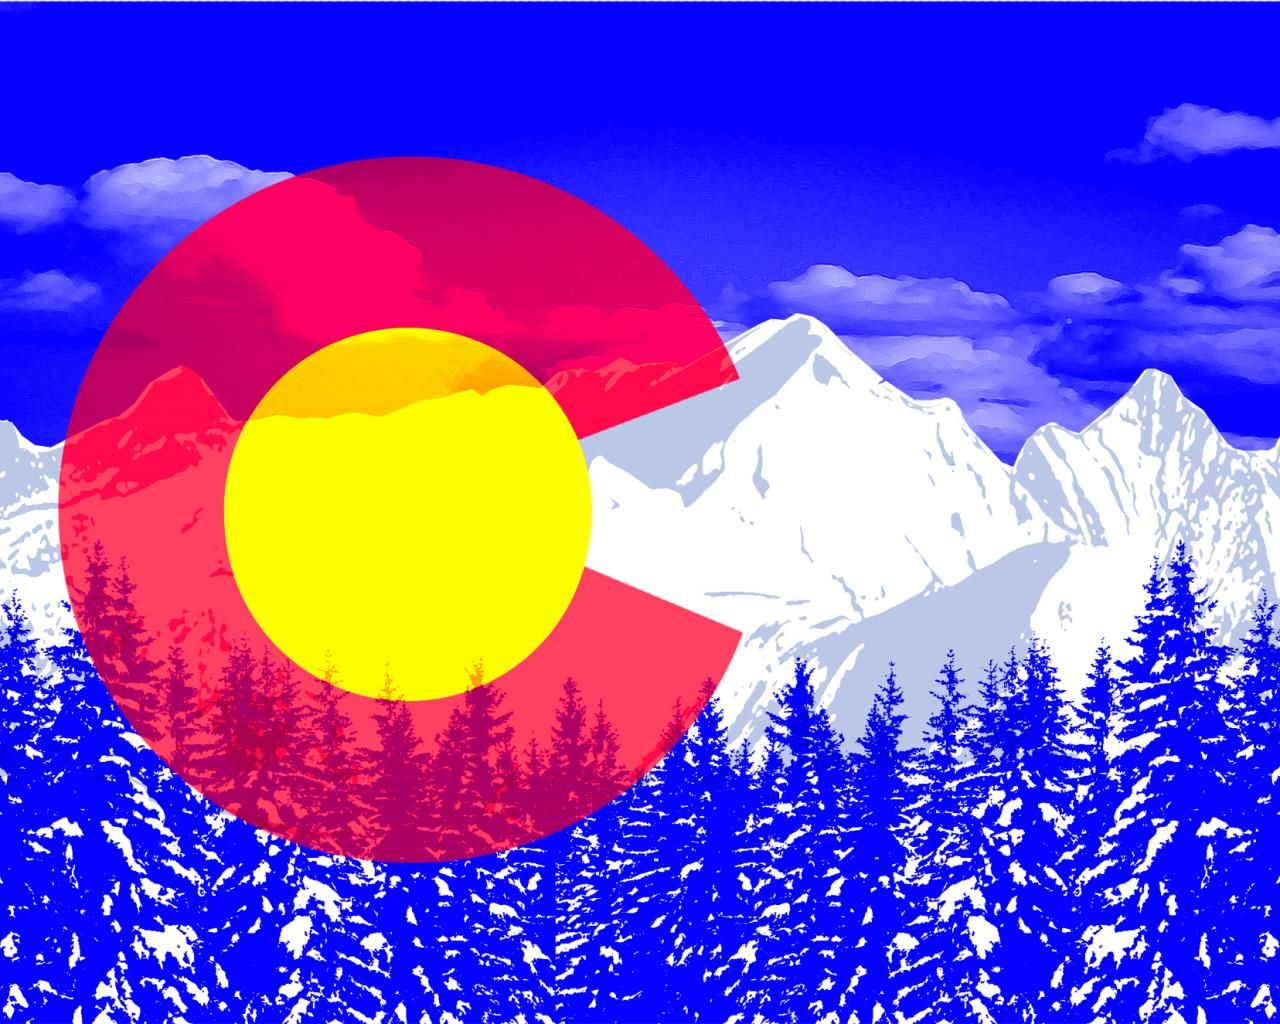 colorado flag tattoo flags 1920x1080 wallpaper modern wallpapers free desktop kootation. Black Bedroom Furniture Sets. Home Design Ideas